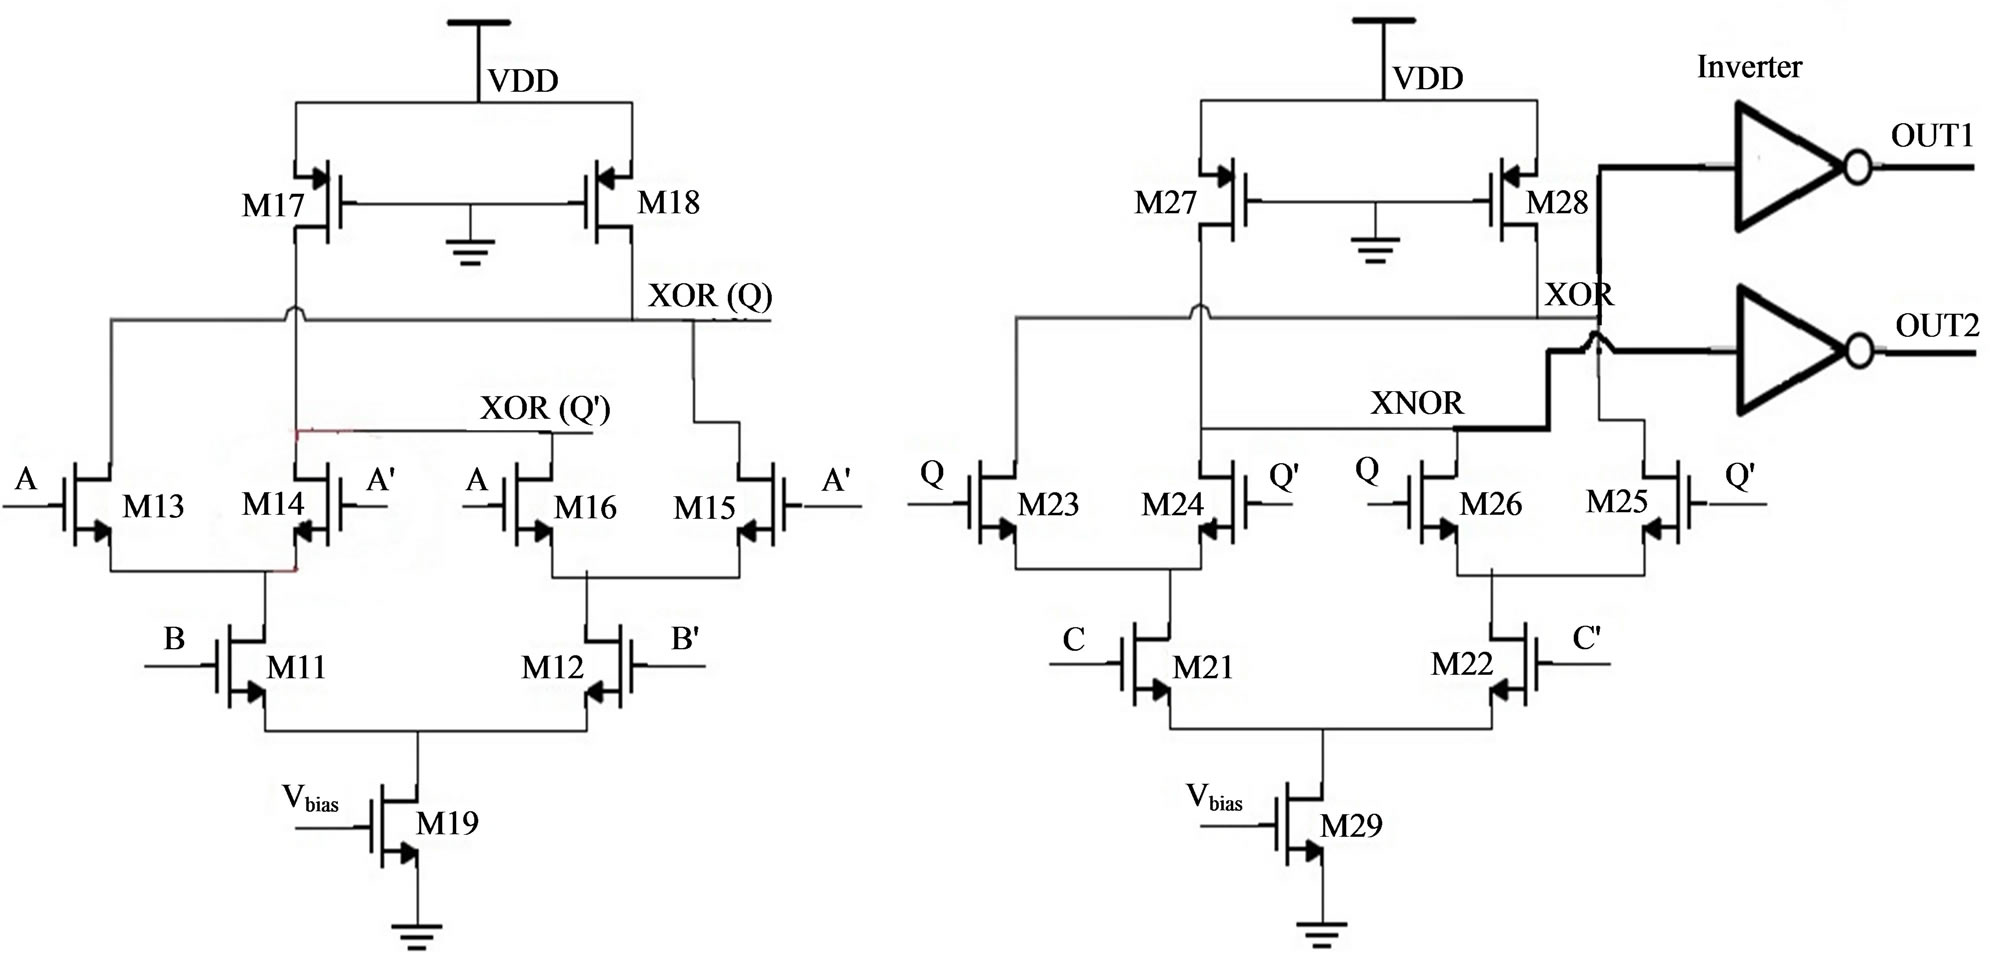 Circuit Diagram Of Xnor Gate Wiring Libraries Diagrams Logic Gates Photos On Using Schematic Datacircuit Library Ac Voltmeter